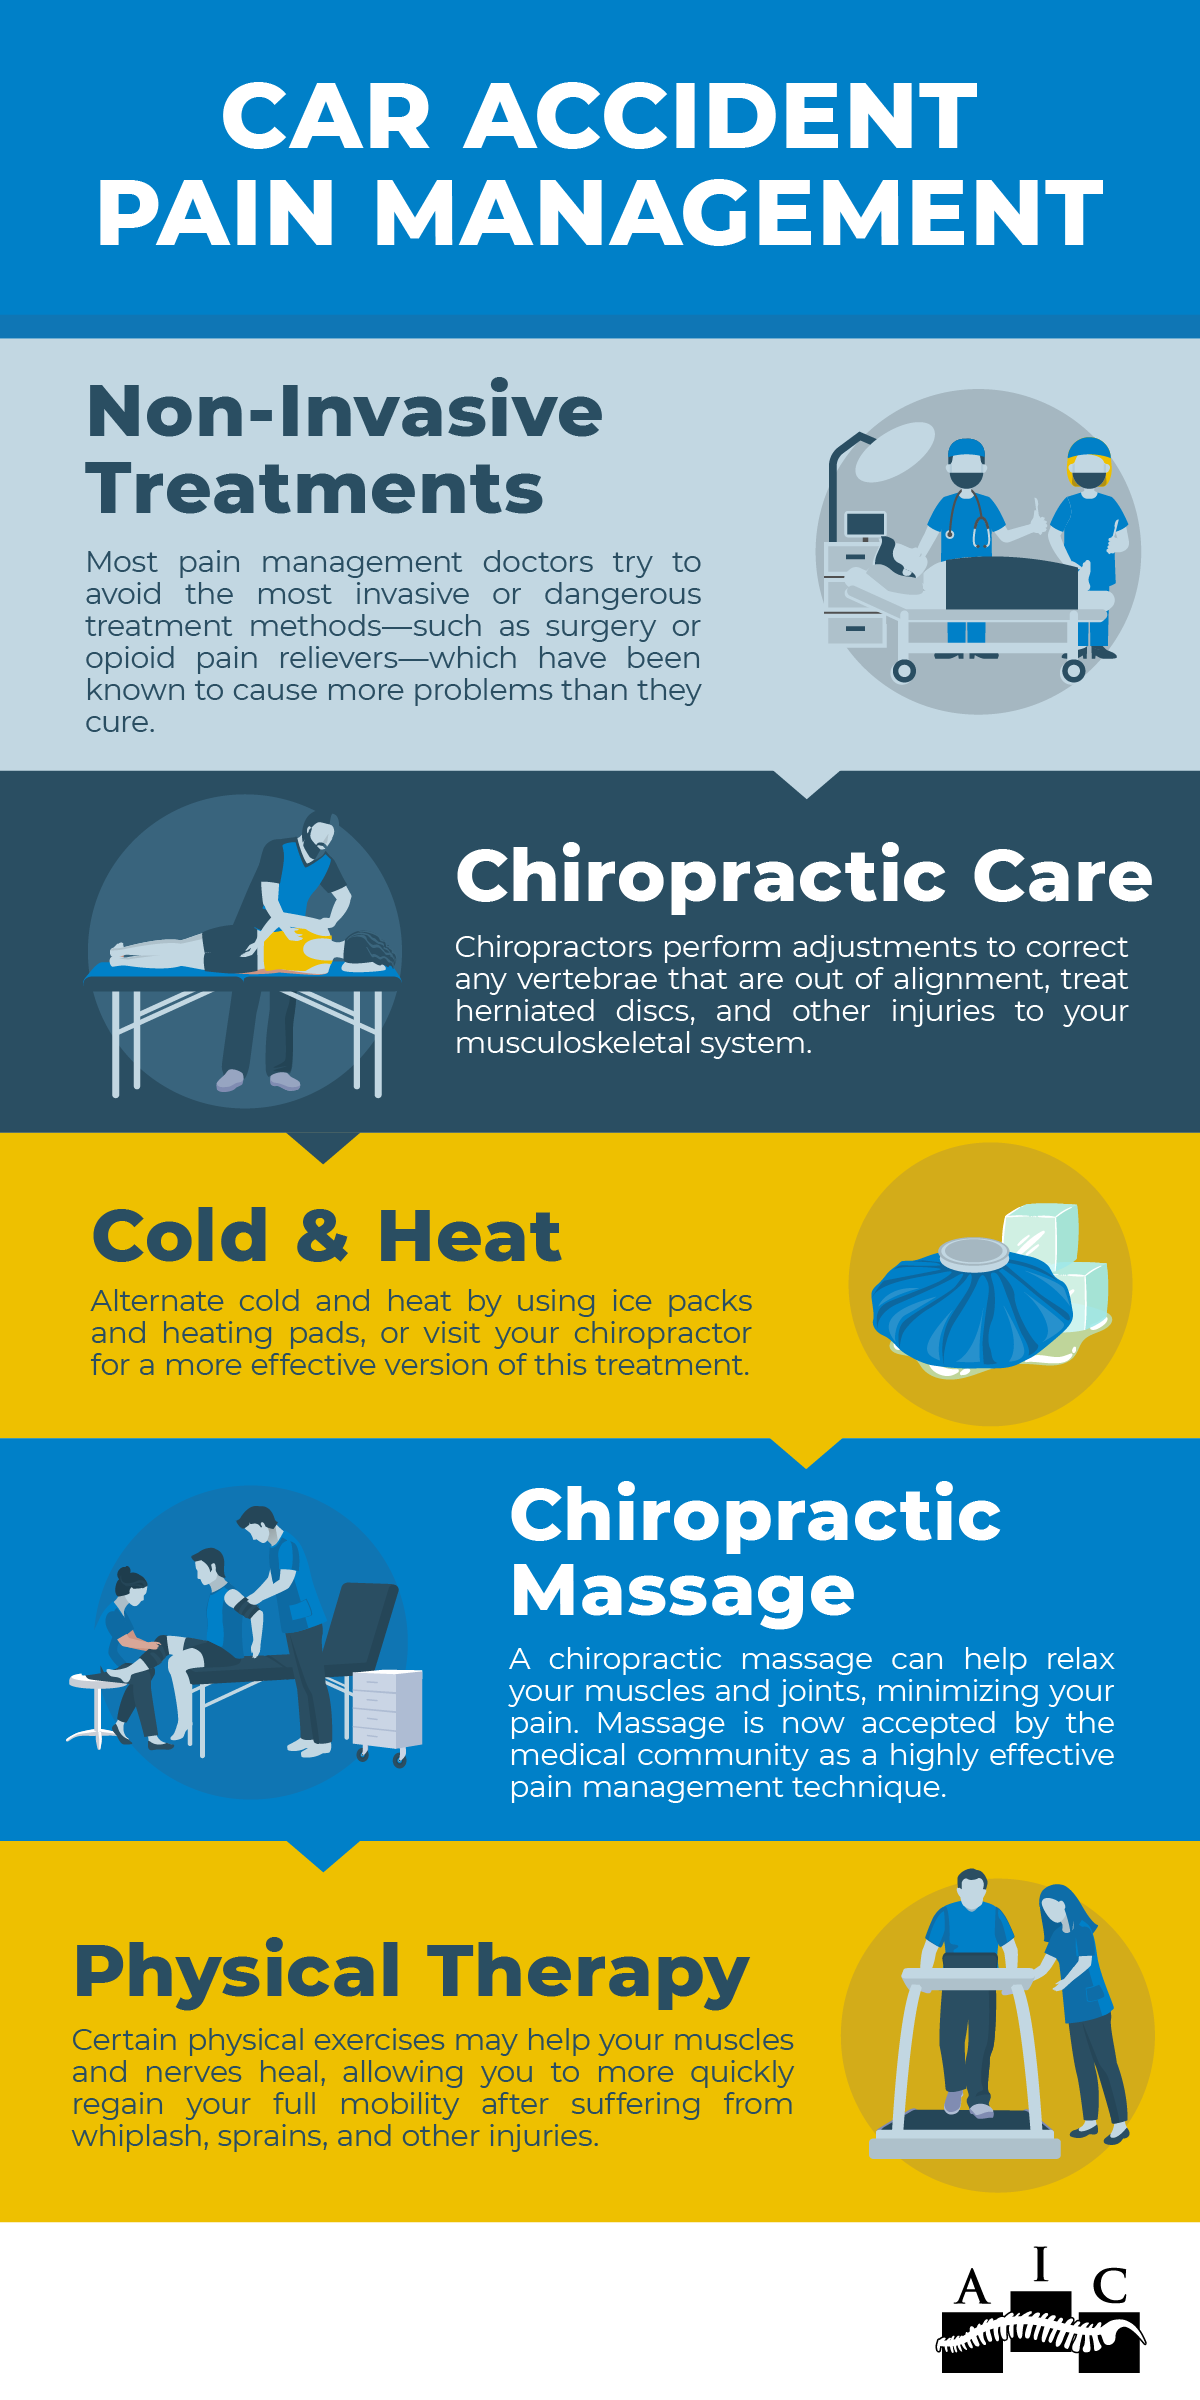 car accident pain management infographic